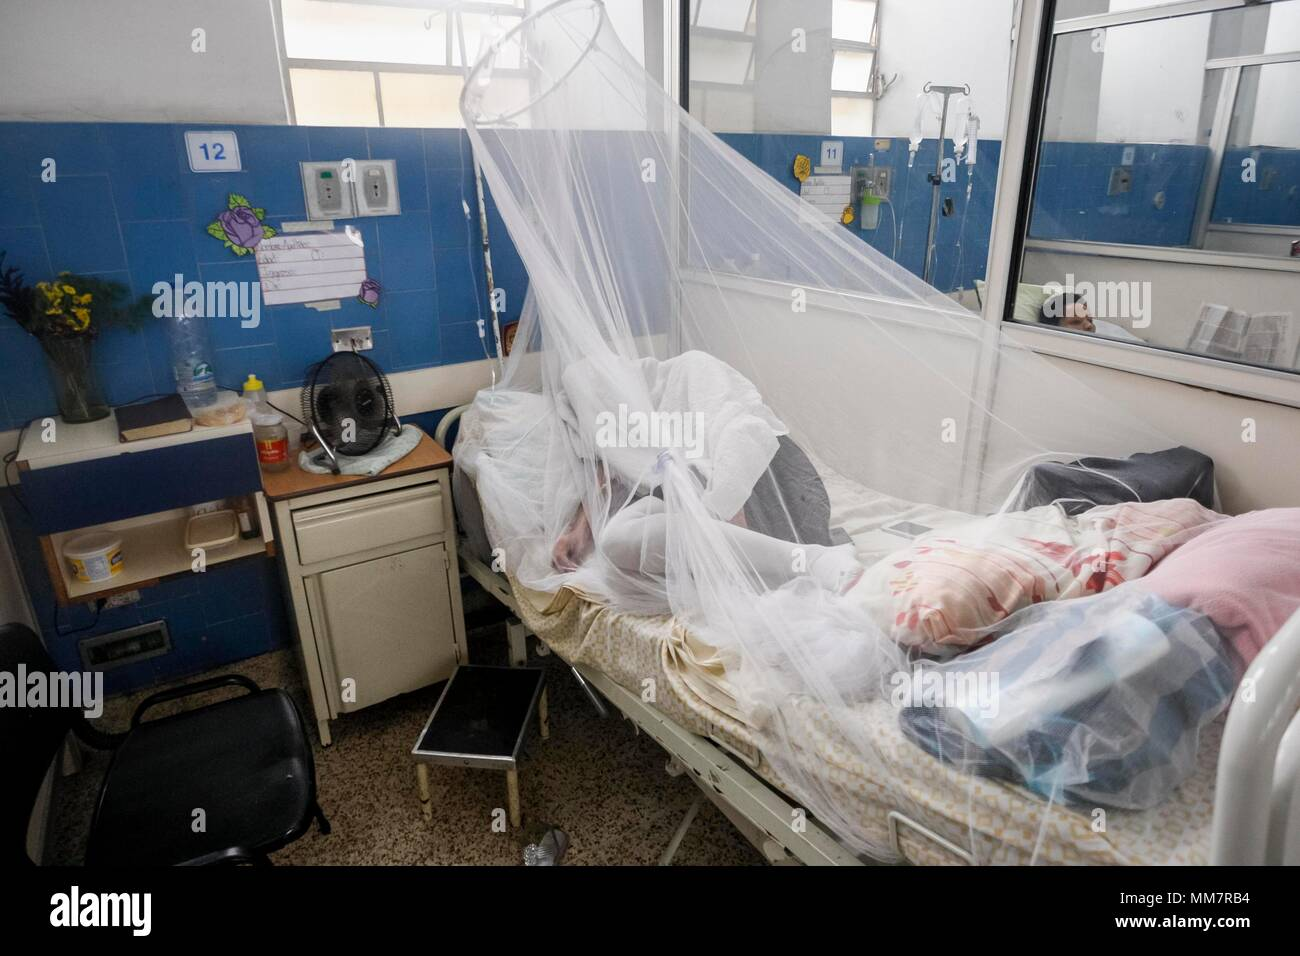 A view of the facilities at the Dr. Jose Maria Vargas Hospital in Caracas, Venezuela, 10 May 2018. Patients and healthcare professionals protested for the deterioration of the public health system at the hospital and a group of alleged chavists held several journalists and a group of doctors participating in the protest hostage. EFE/Edwinge Montilva - Stock Image